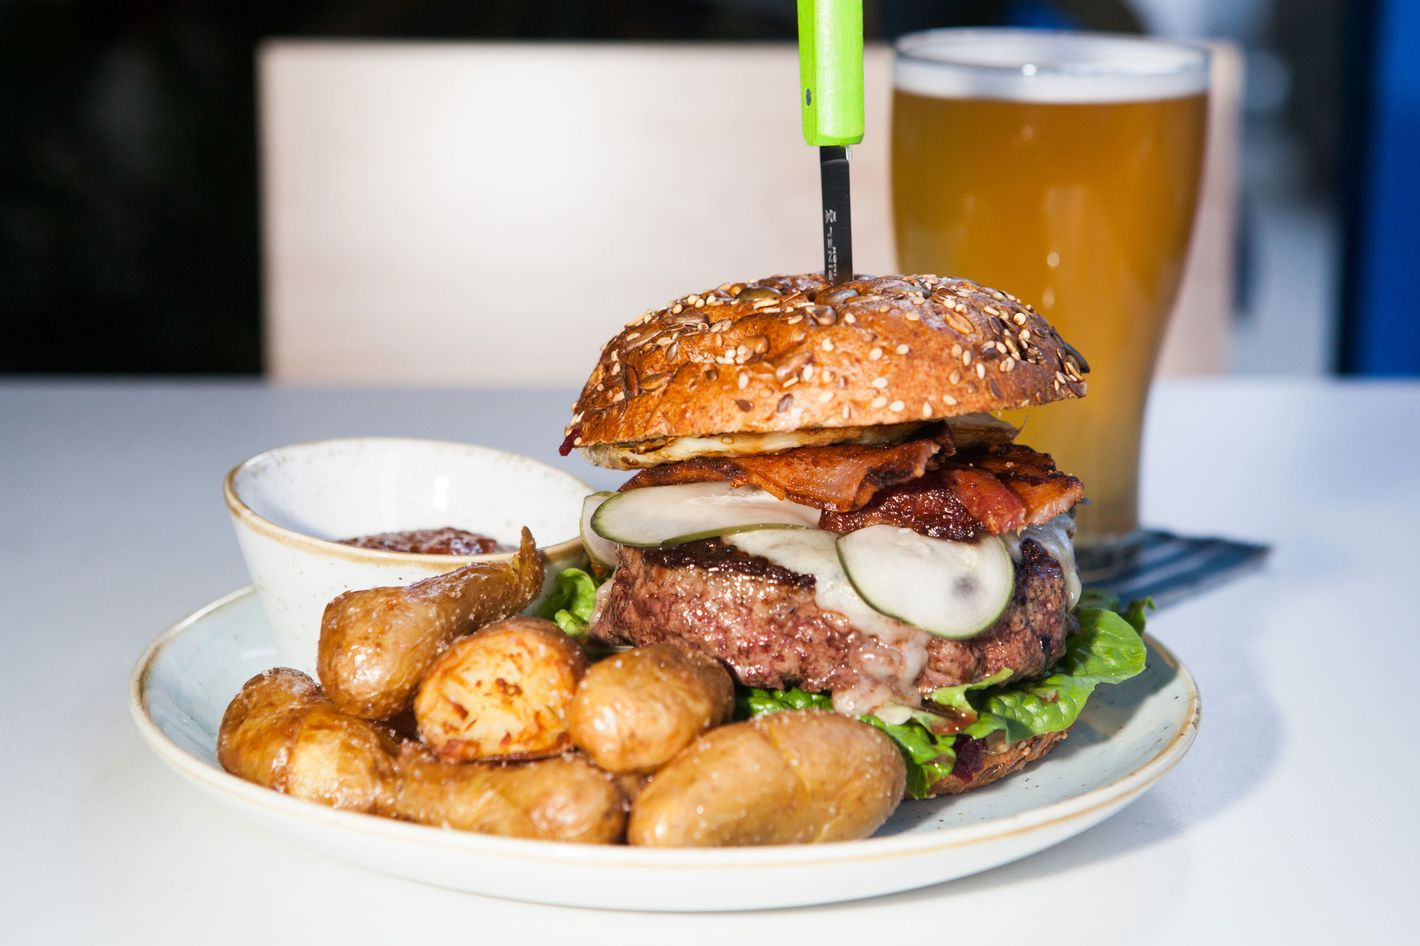 The Two Hands beef burger, with crispy potatoes and housemade ketchup (avocado and bacon are optional).